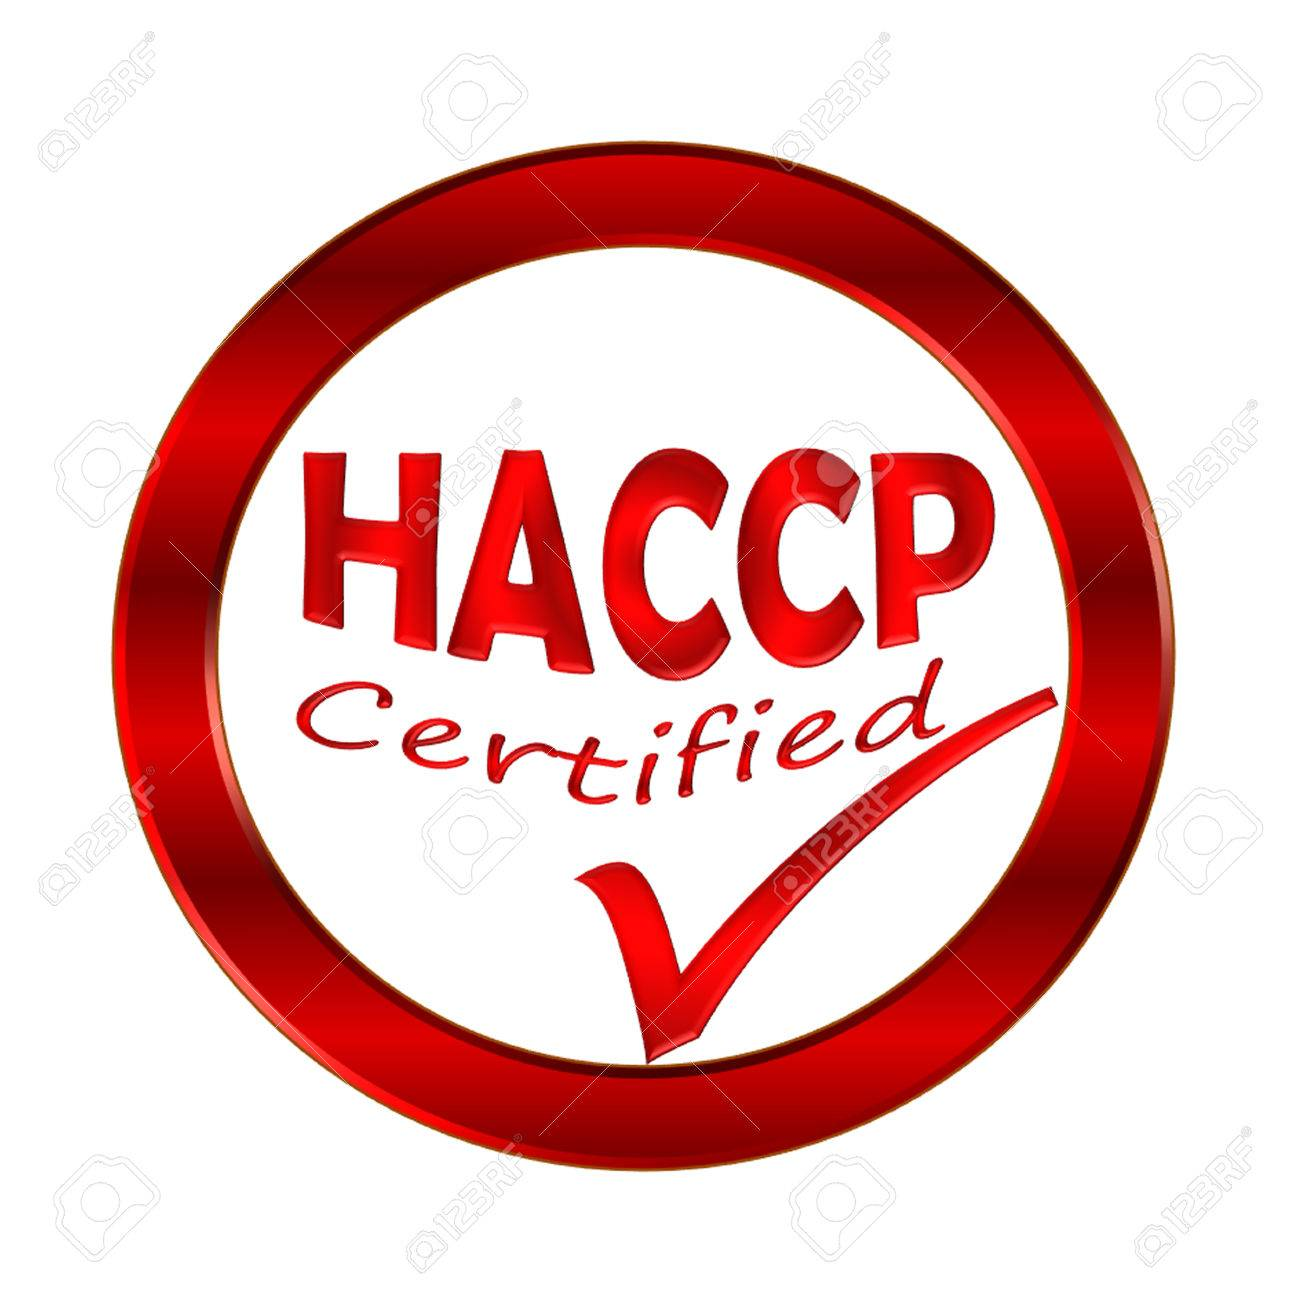 Haccp Certified Logo Or Symbol Image Concept Design On White Stock